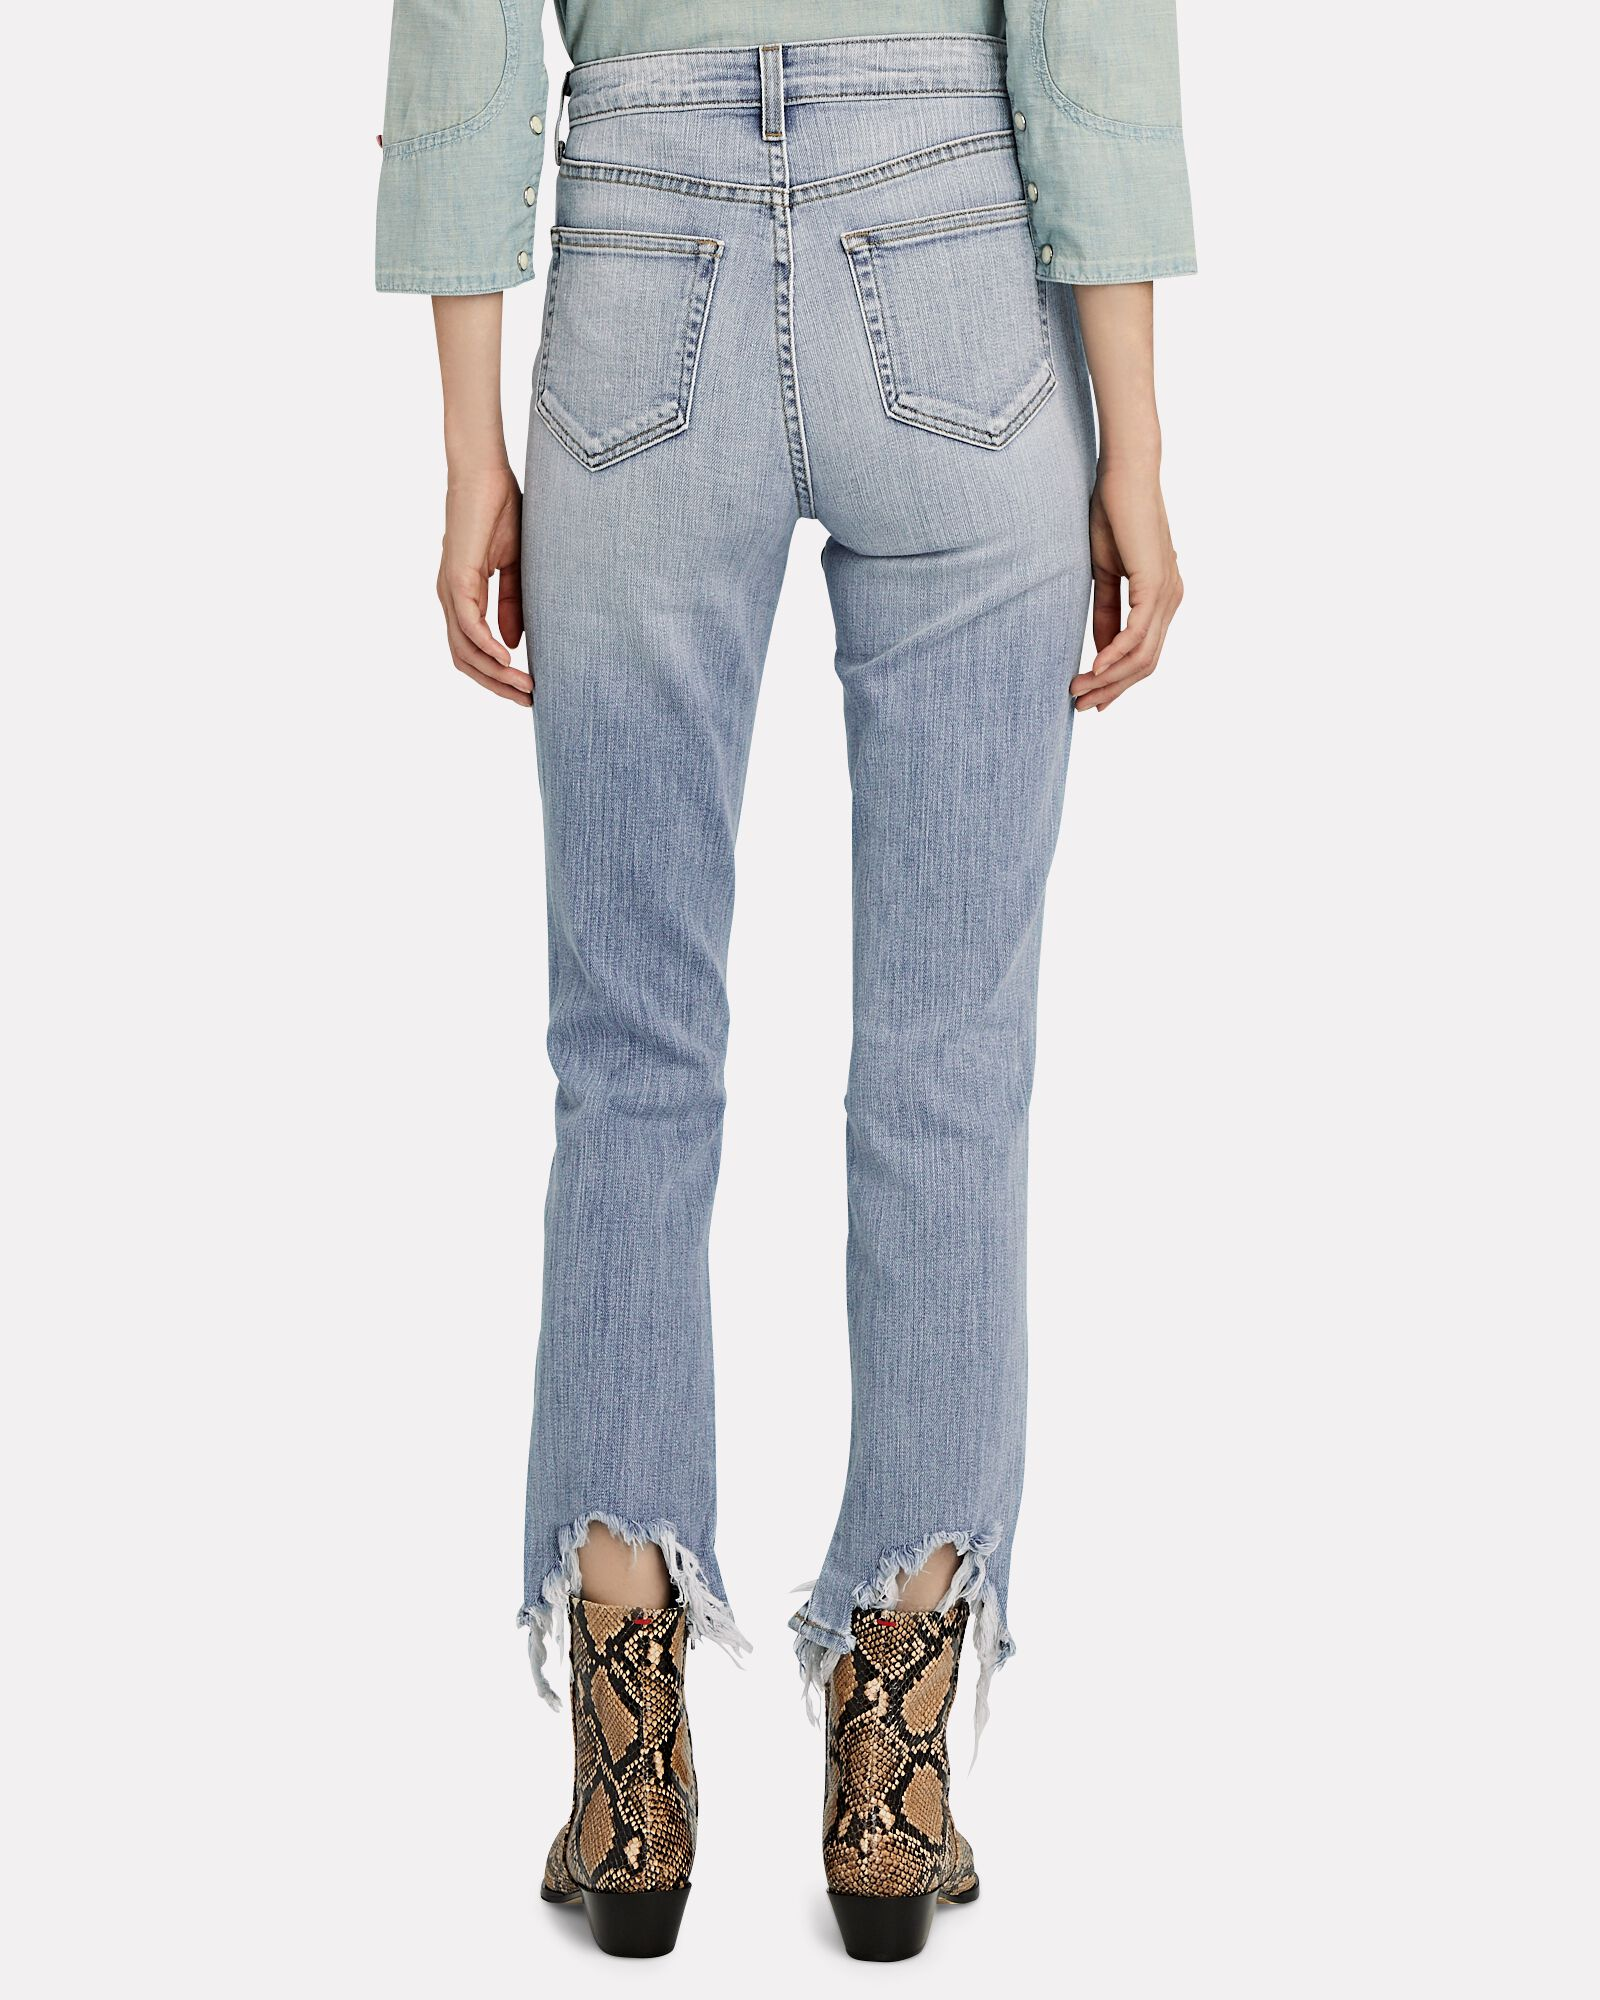 High Line Distressed Skinny Jeans, BRAISE, hi-res